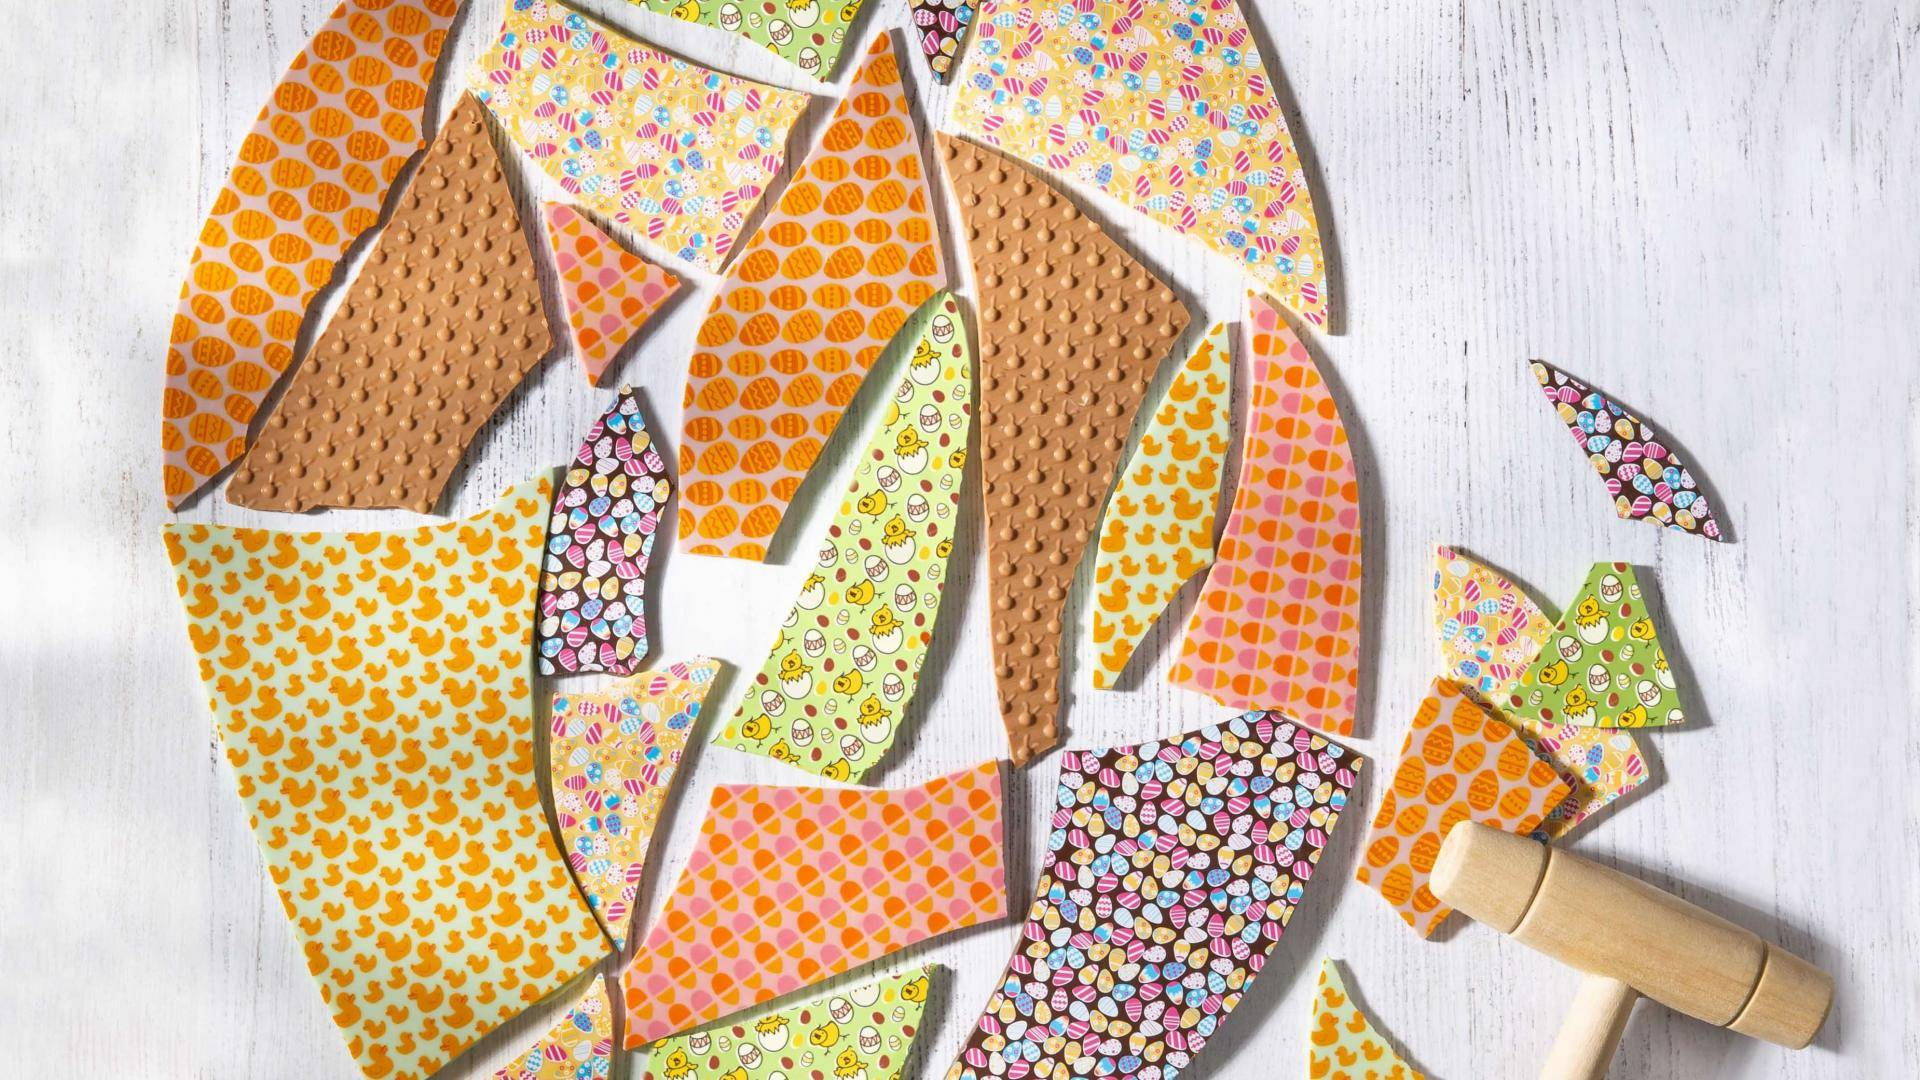 Slabs of colored chocolate with Easter prints and textures